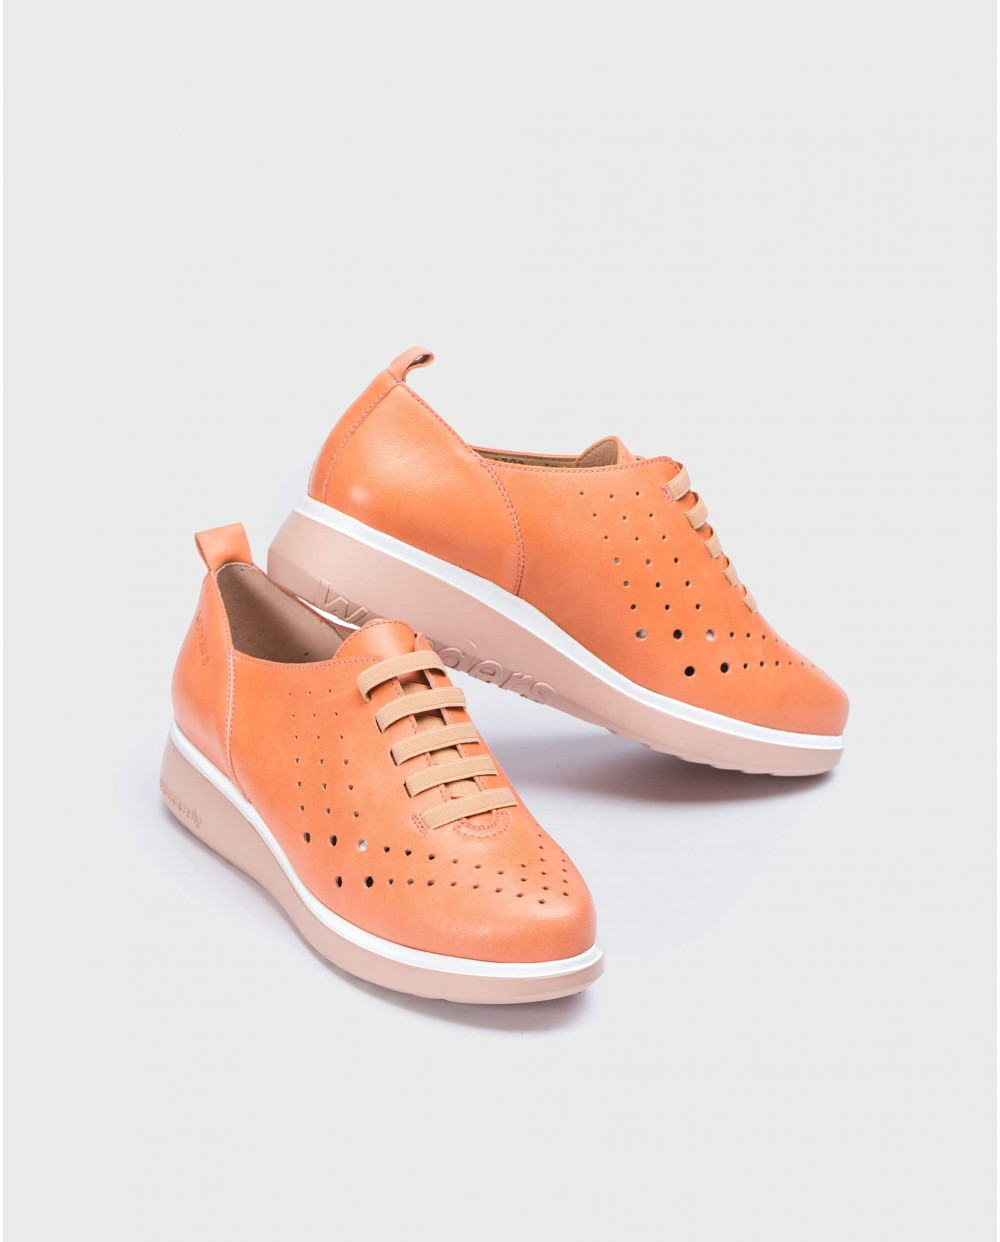 Wonders-Outlet-Leather sneakers with elastic detail